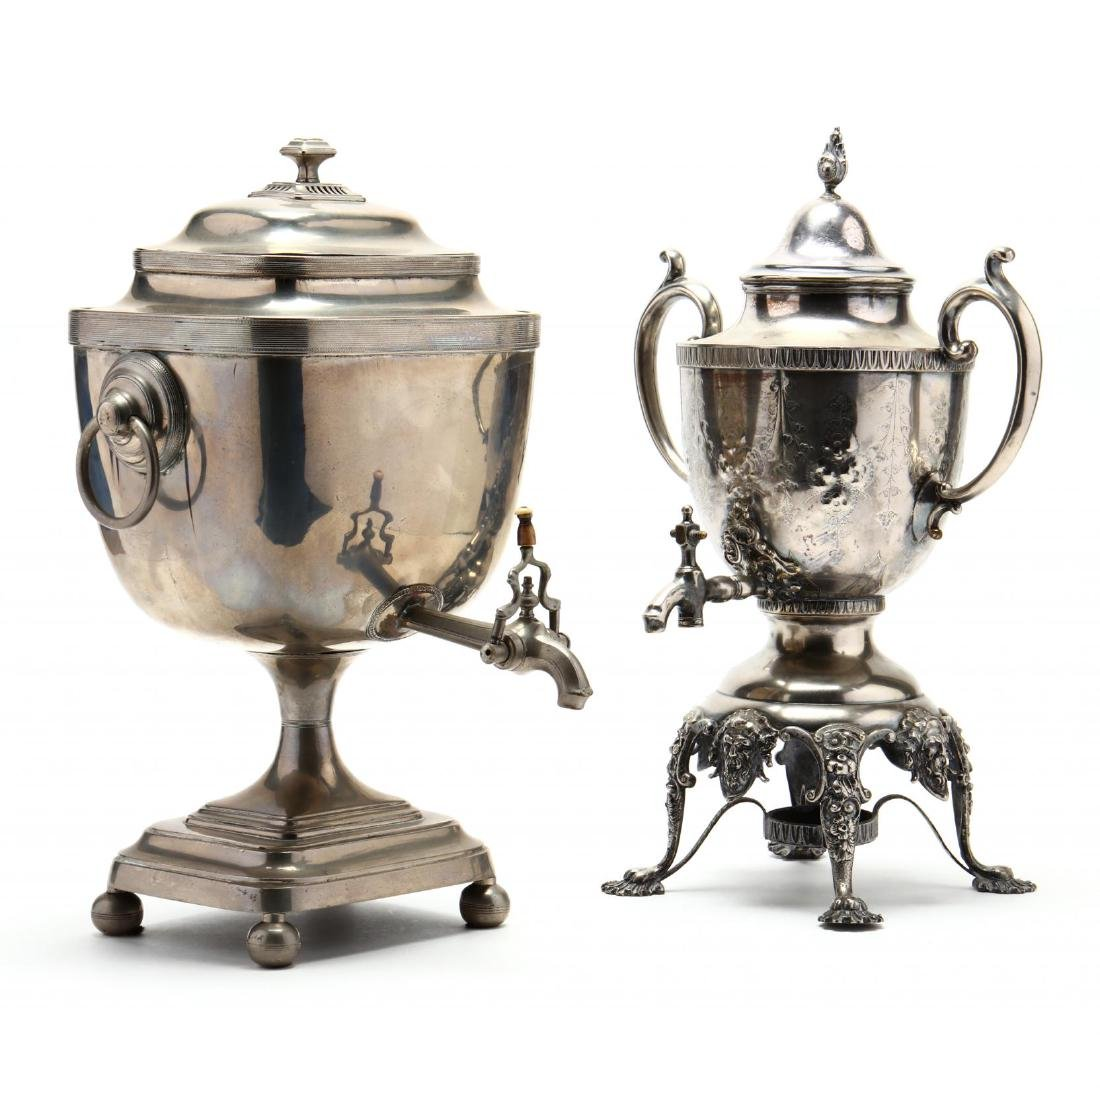 Two Antique Silverplate Tea Urns